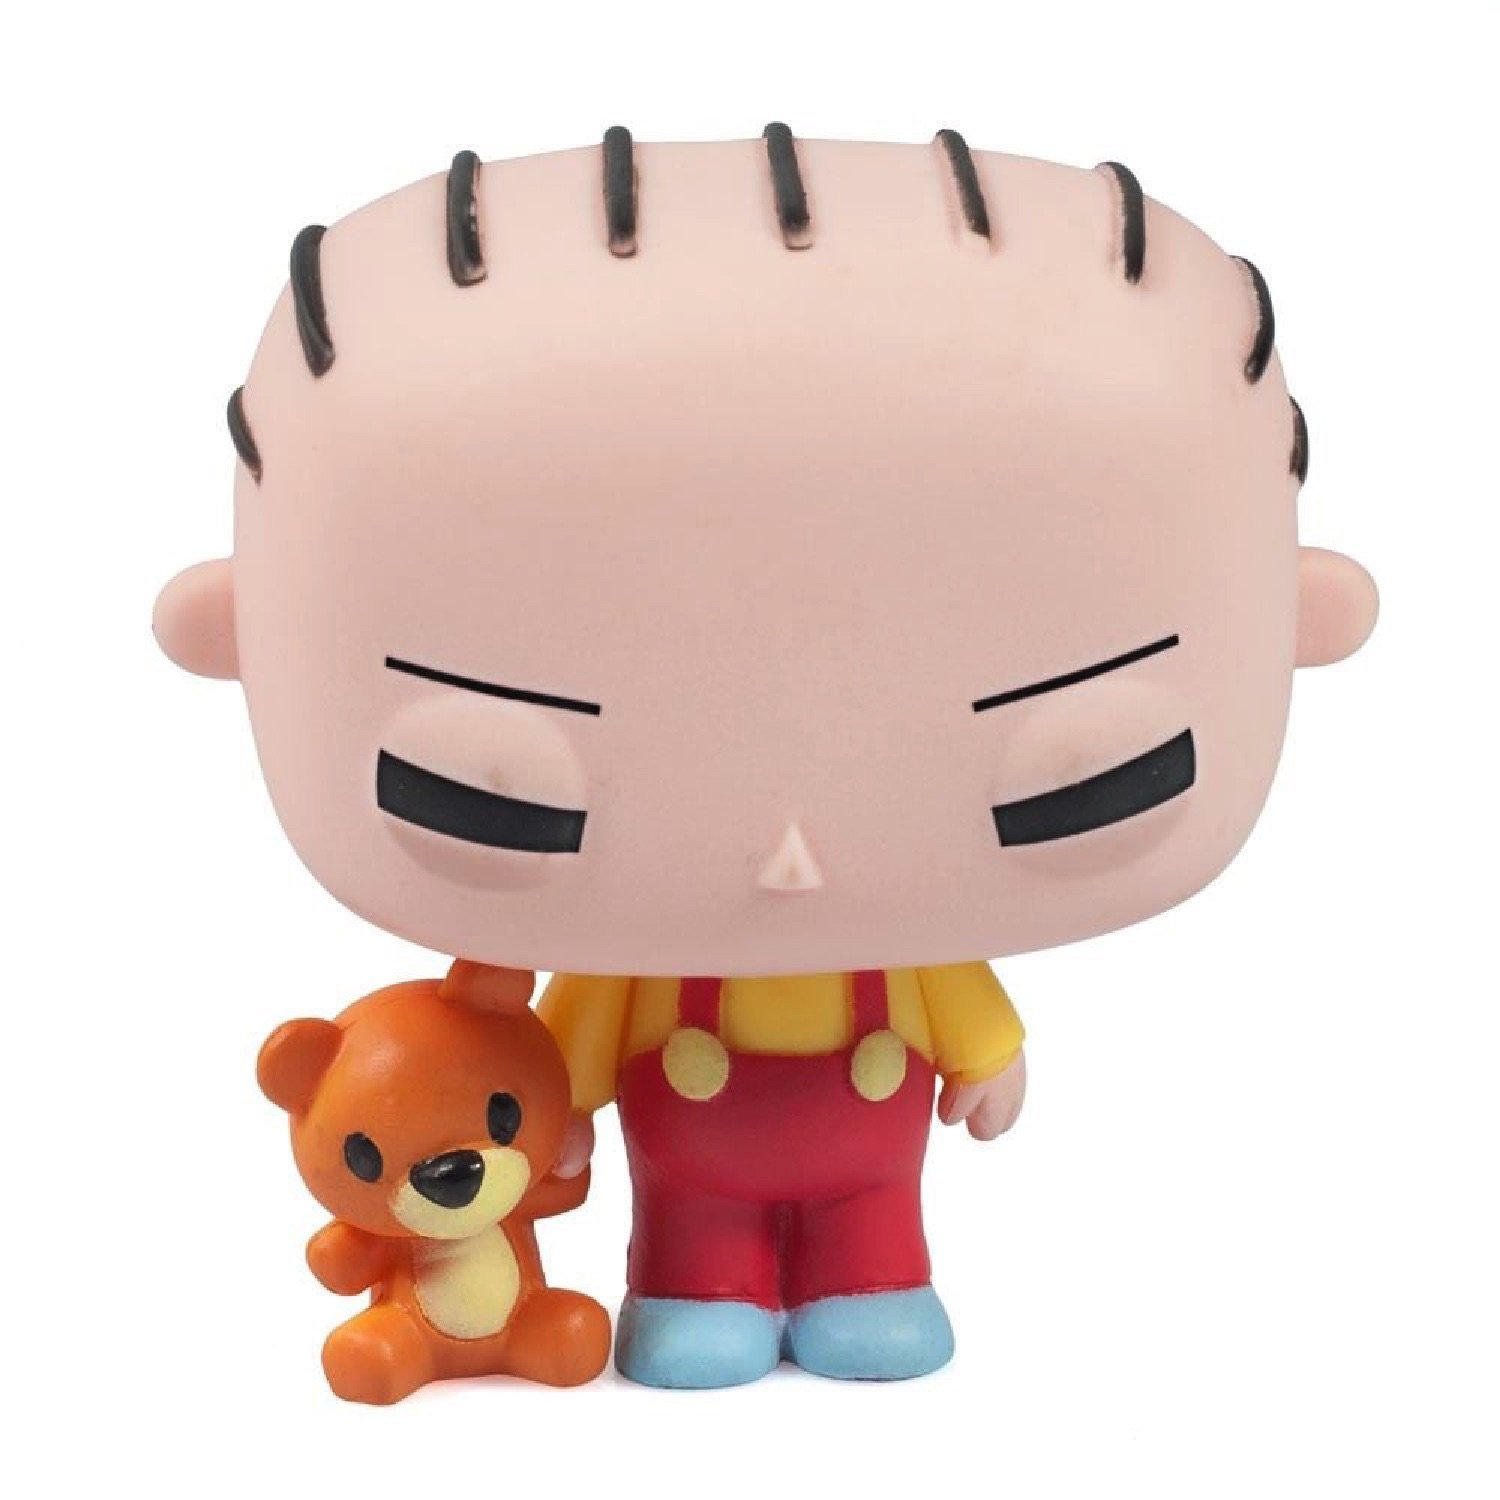 Amazon funko pop tv family guy stewie action figure funko pop amazon funko pop tv family guy stewie action figure funko pop television toys games altavistaventures Image collections